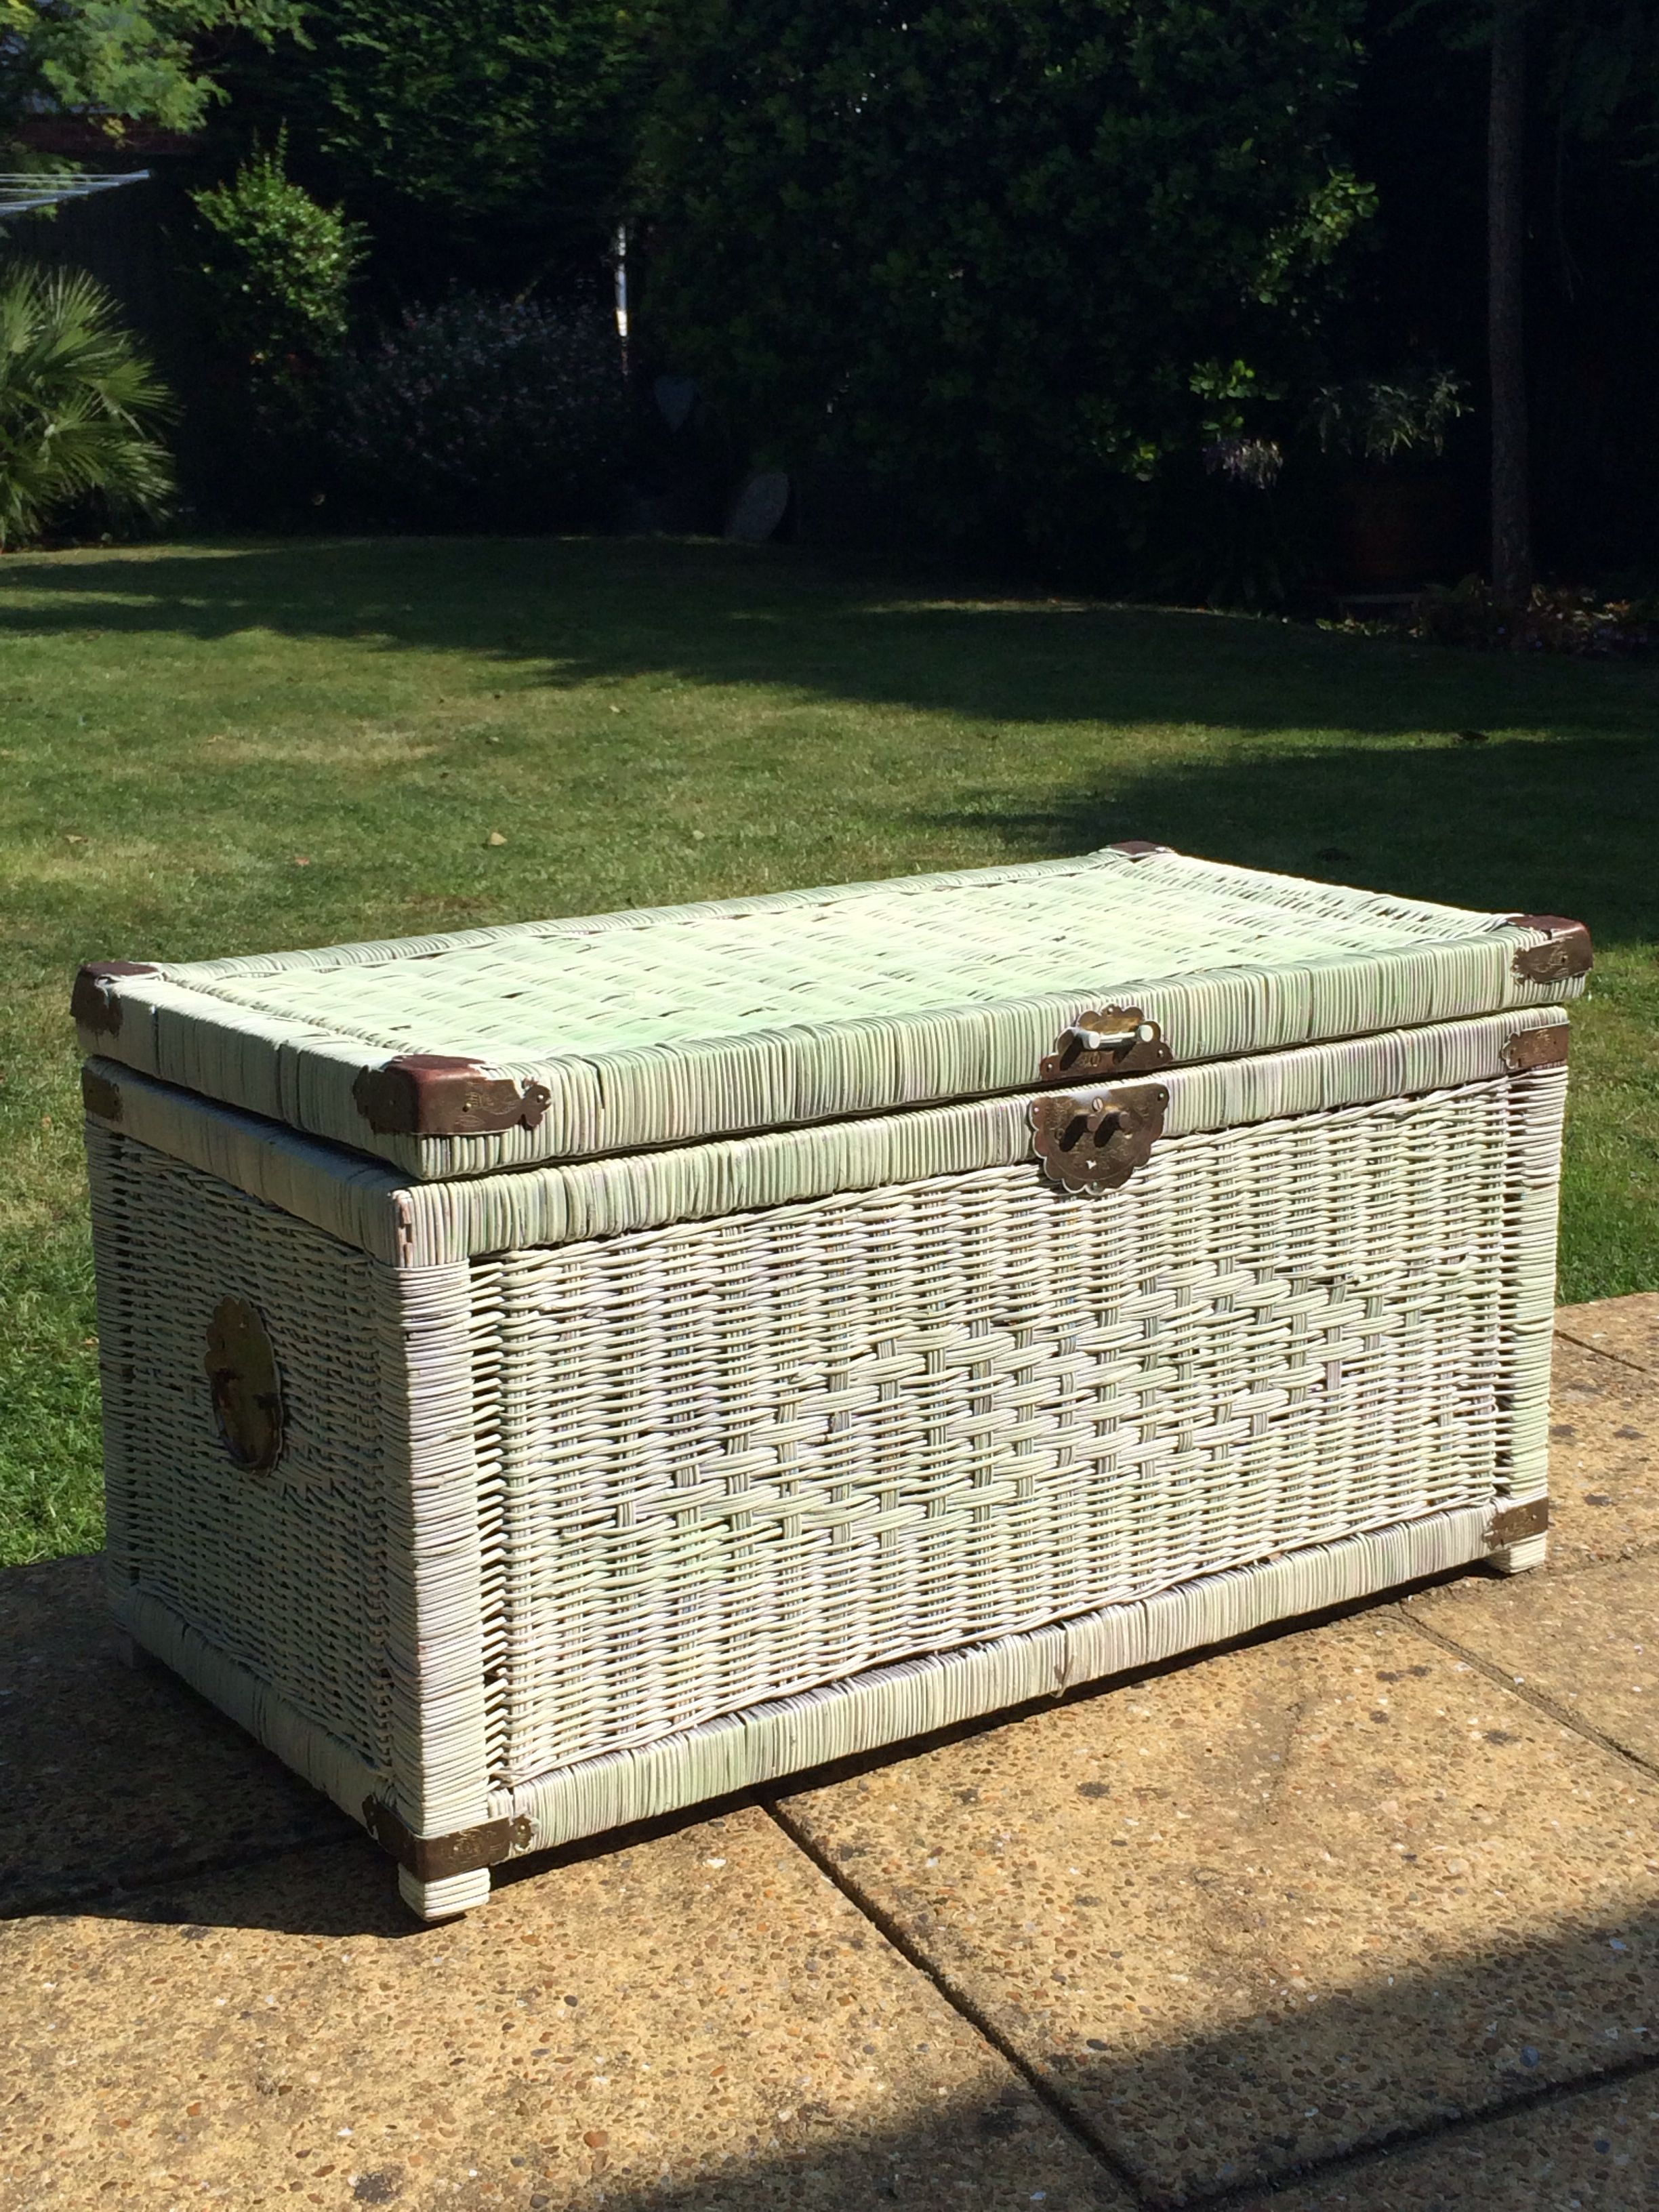 Tired Wicker Trunk Transformed And Updated With Shabby Chic Pale Green Paint Over Glad This Didn T Sell Painted Wicker Wicker Trunk Vintage Painted Furniture [ 3264 x 2448 Pixel ]